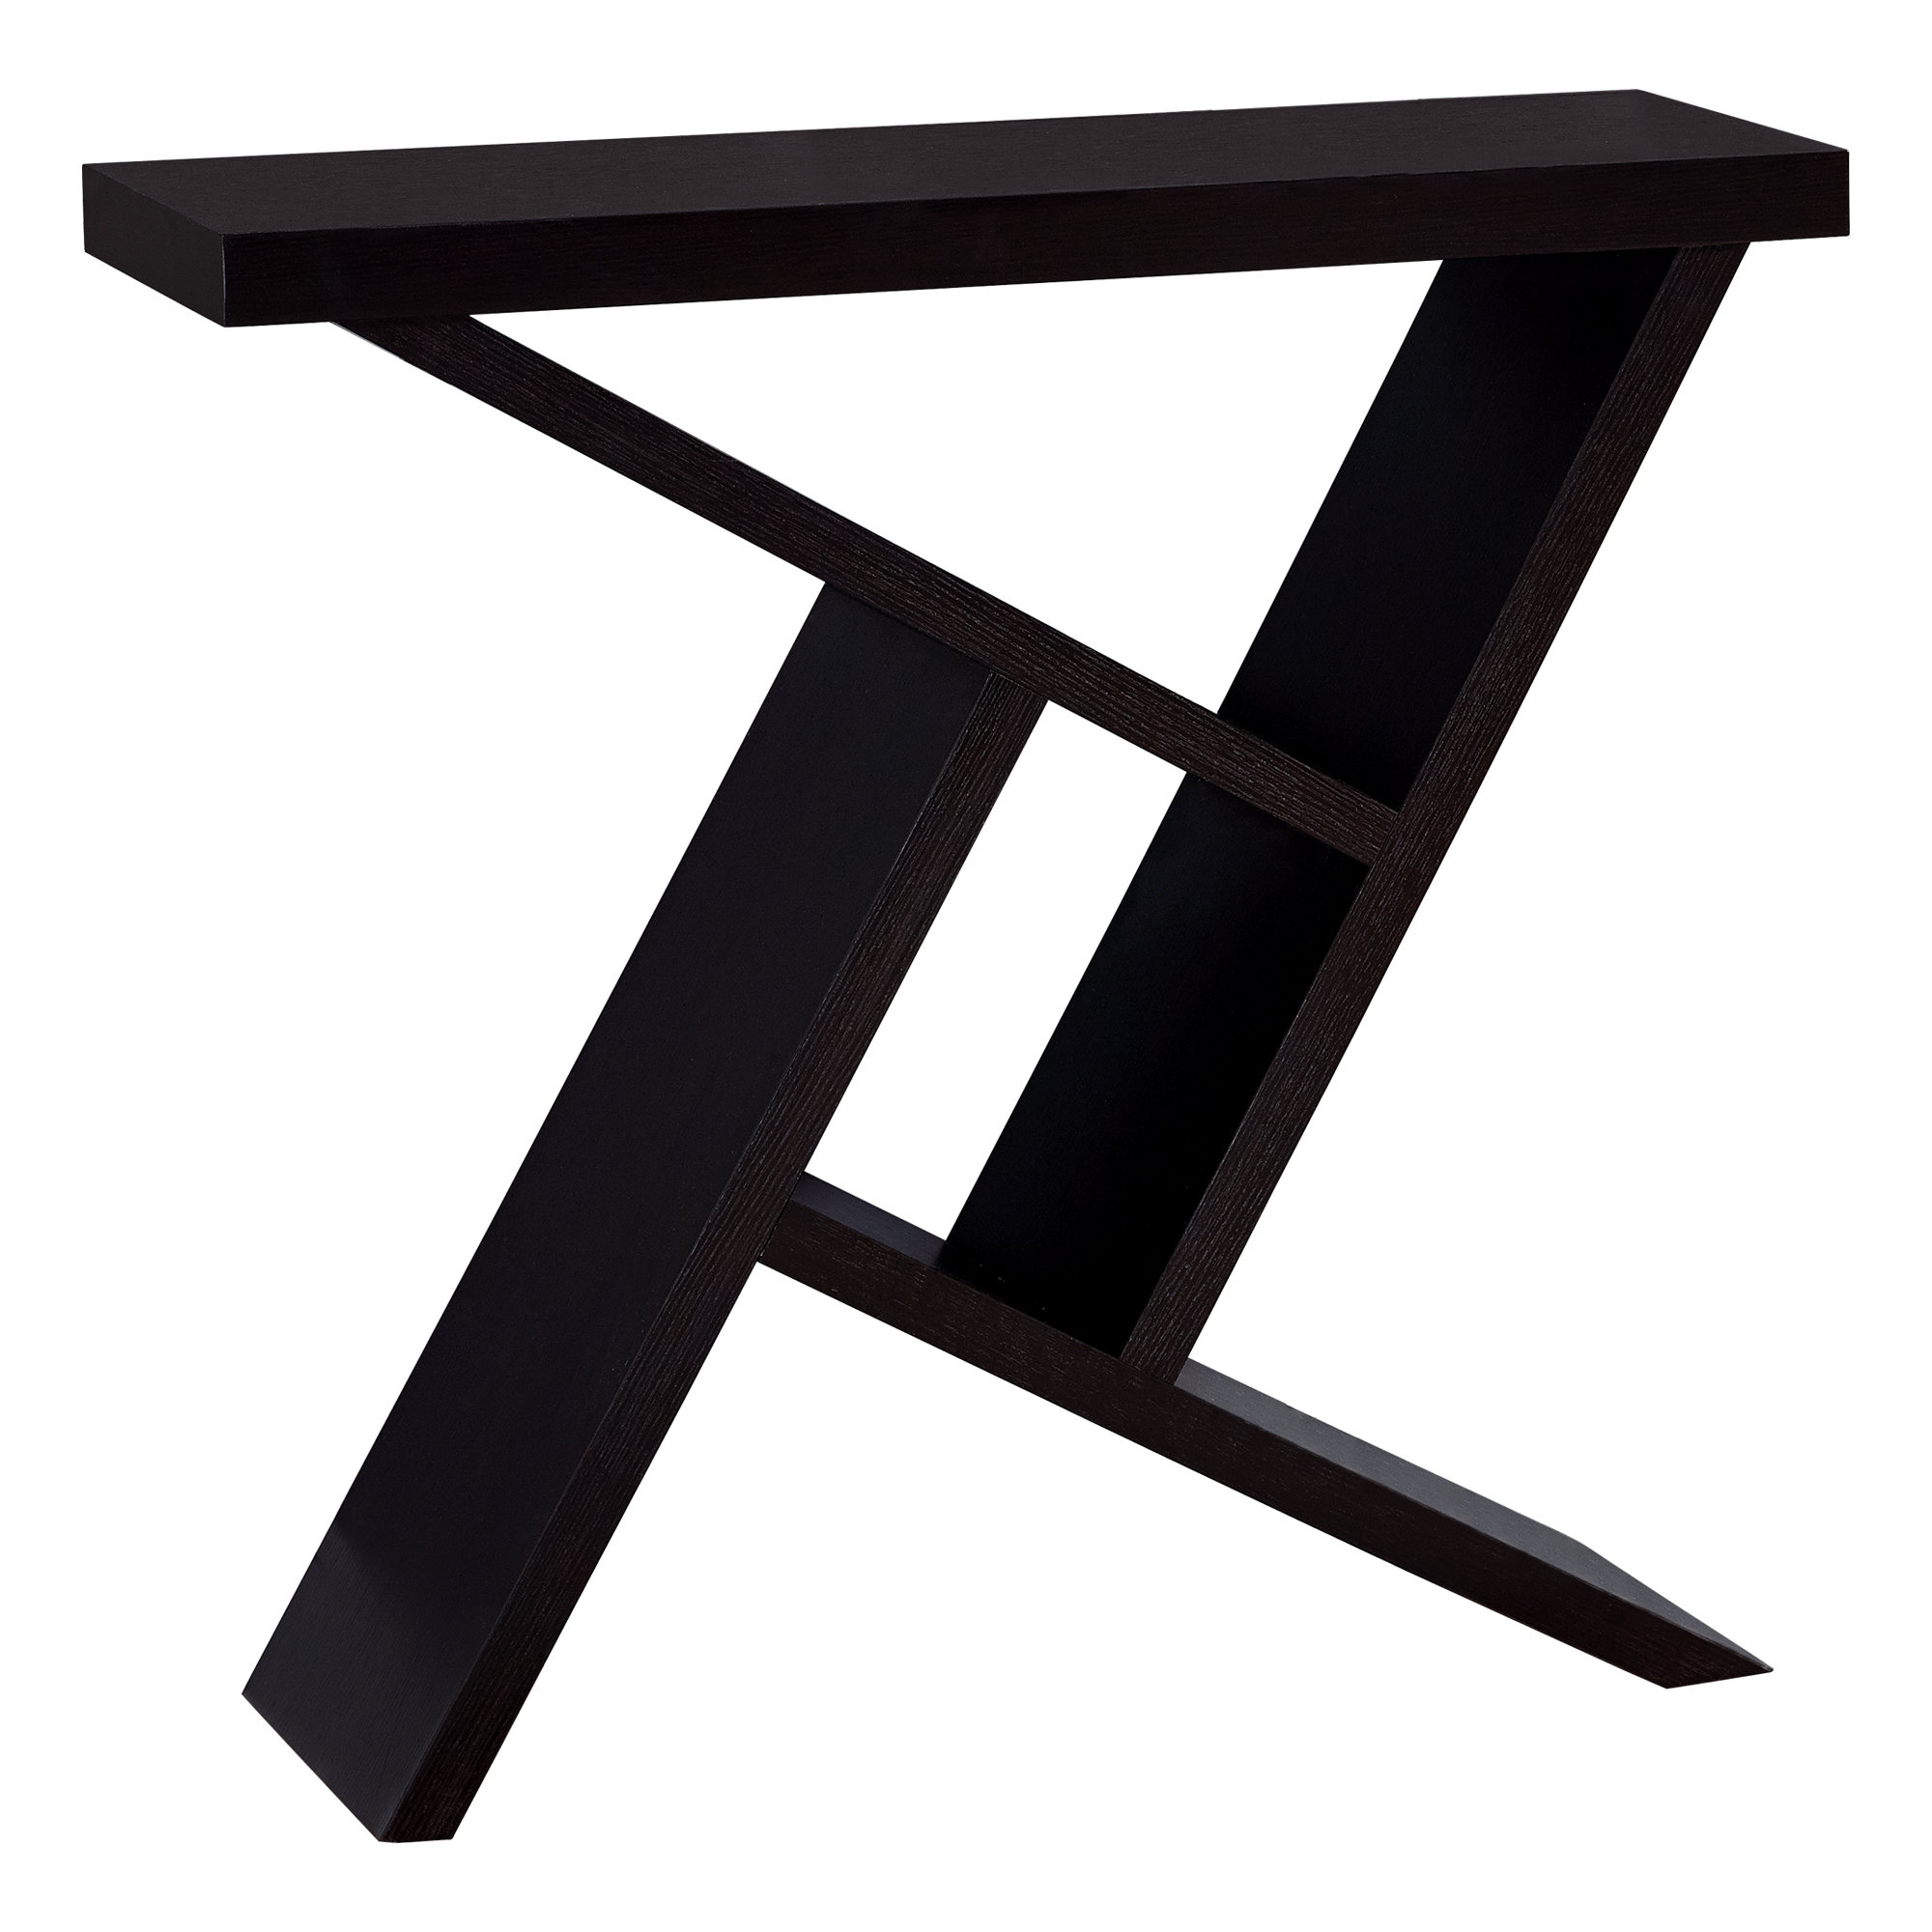 monarch specialties accent table black cement look hall console cappuccino counter height round pub dining room chairs small pedestal cabinet legs door treads wooden knobs cover